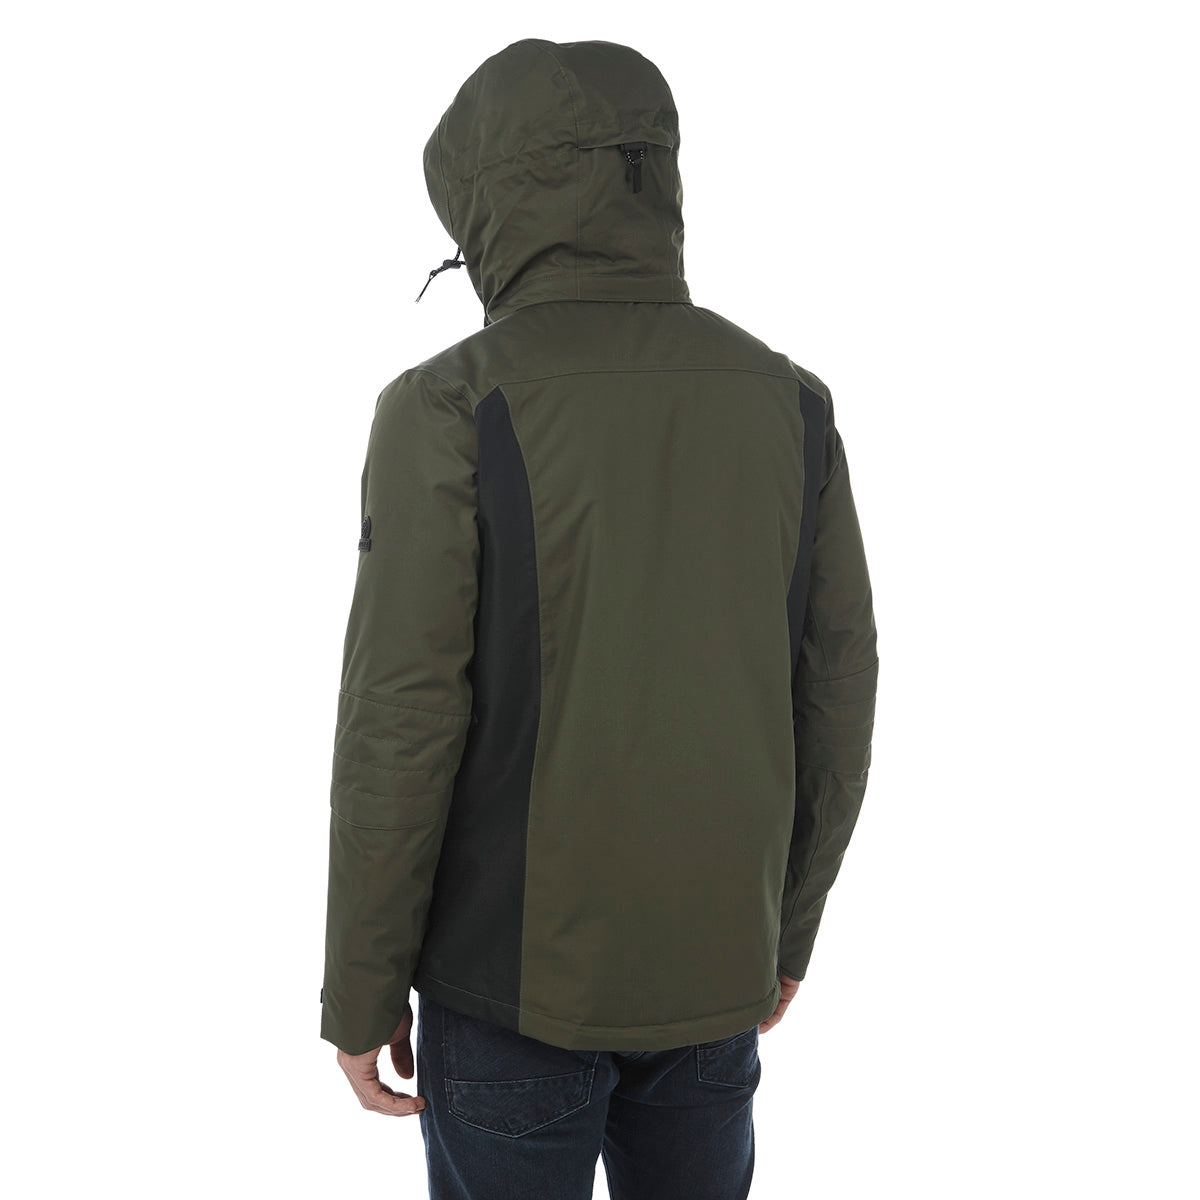 Sharp Mens Waterproof Insulated Ski Jacket - Dark Khaki/Black image 4